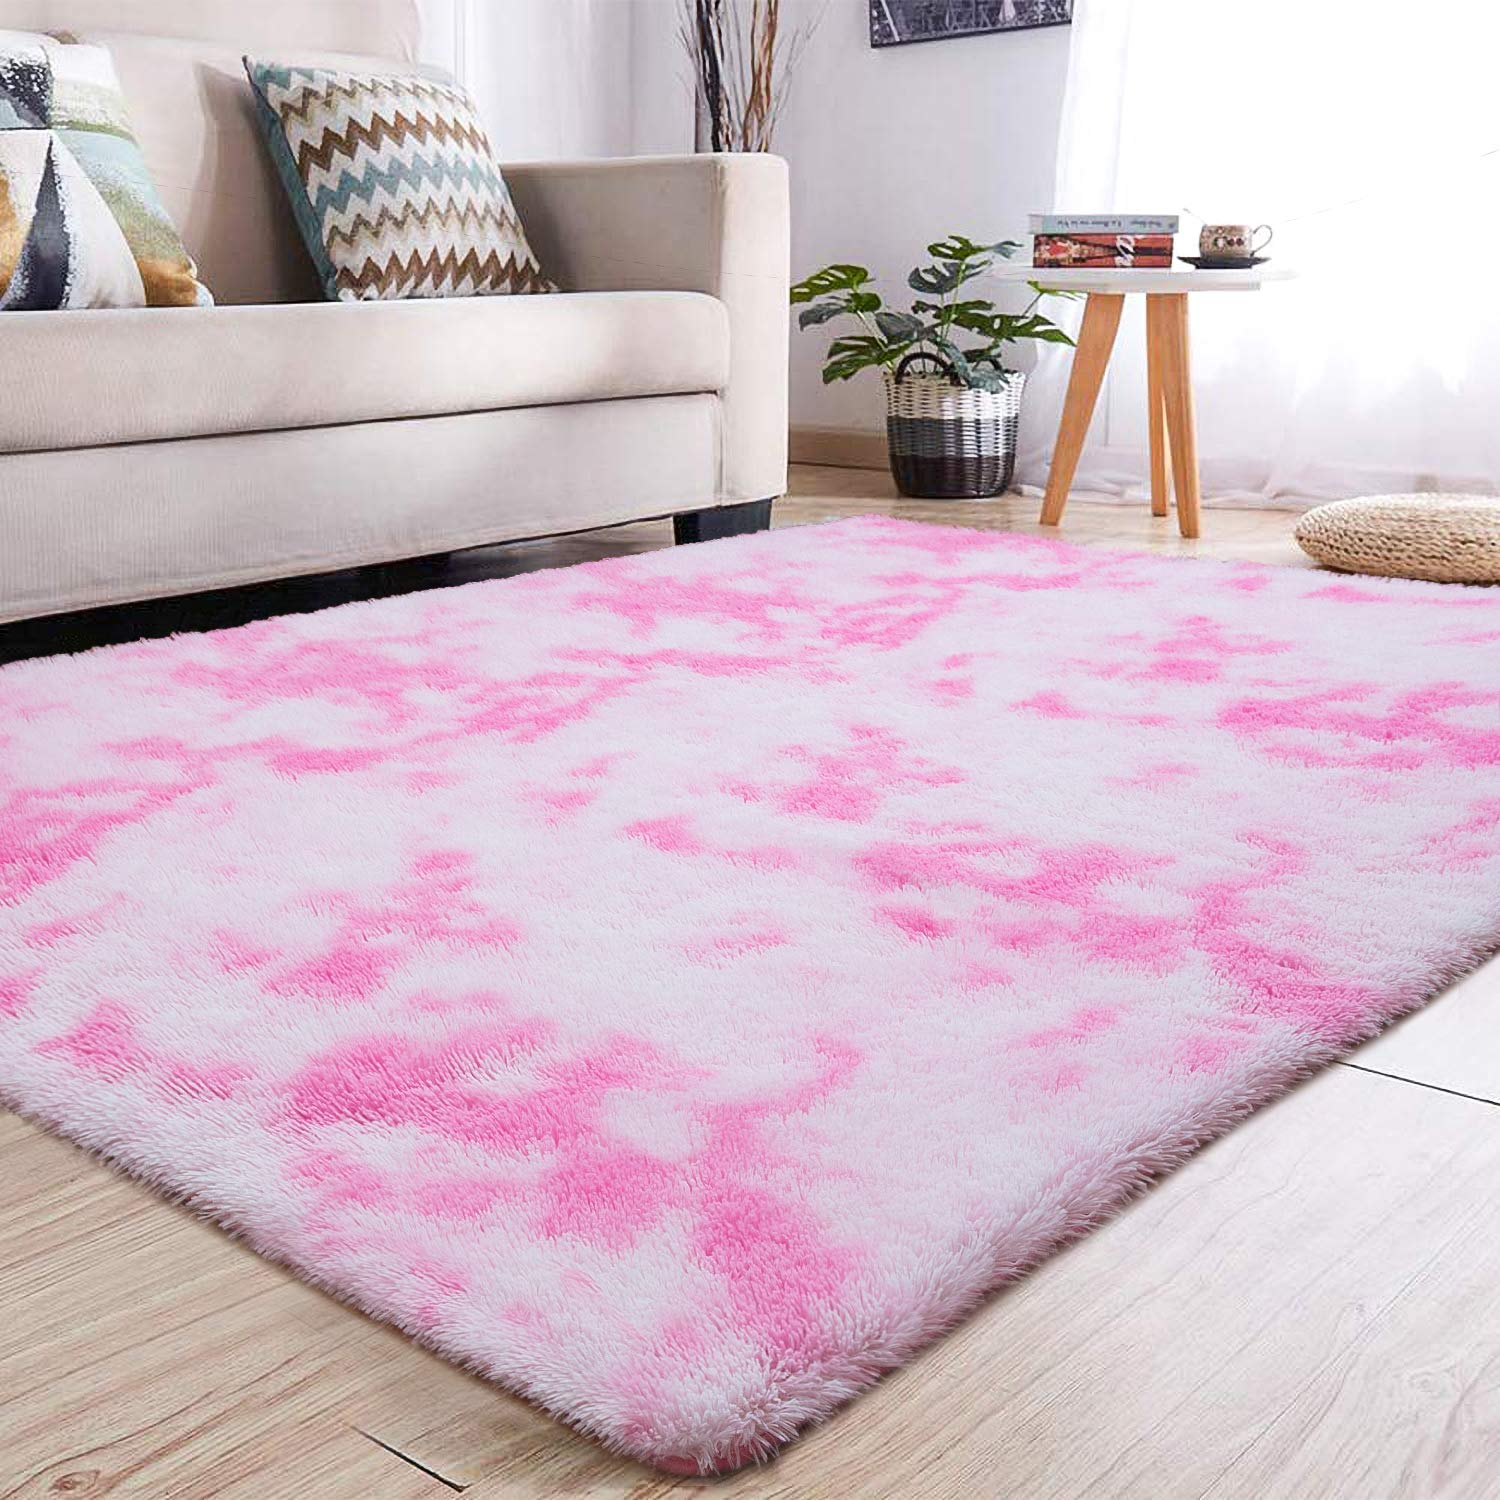 YJ.GWL Soft Indoor Large Modern Area Rugs Shaggy Fluffy Carpets Suitable for Living Room and Bedroom Nursery Rugs Abstract Accent Home Decor Rugs for Girls and Kids 4x6 Feet Pink